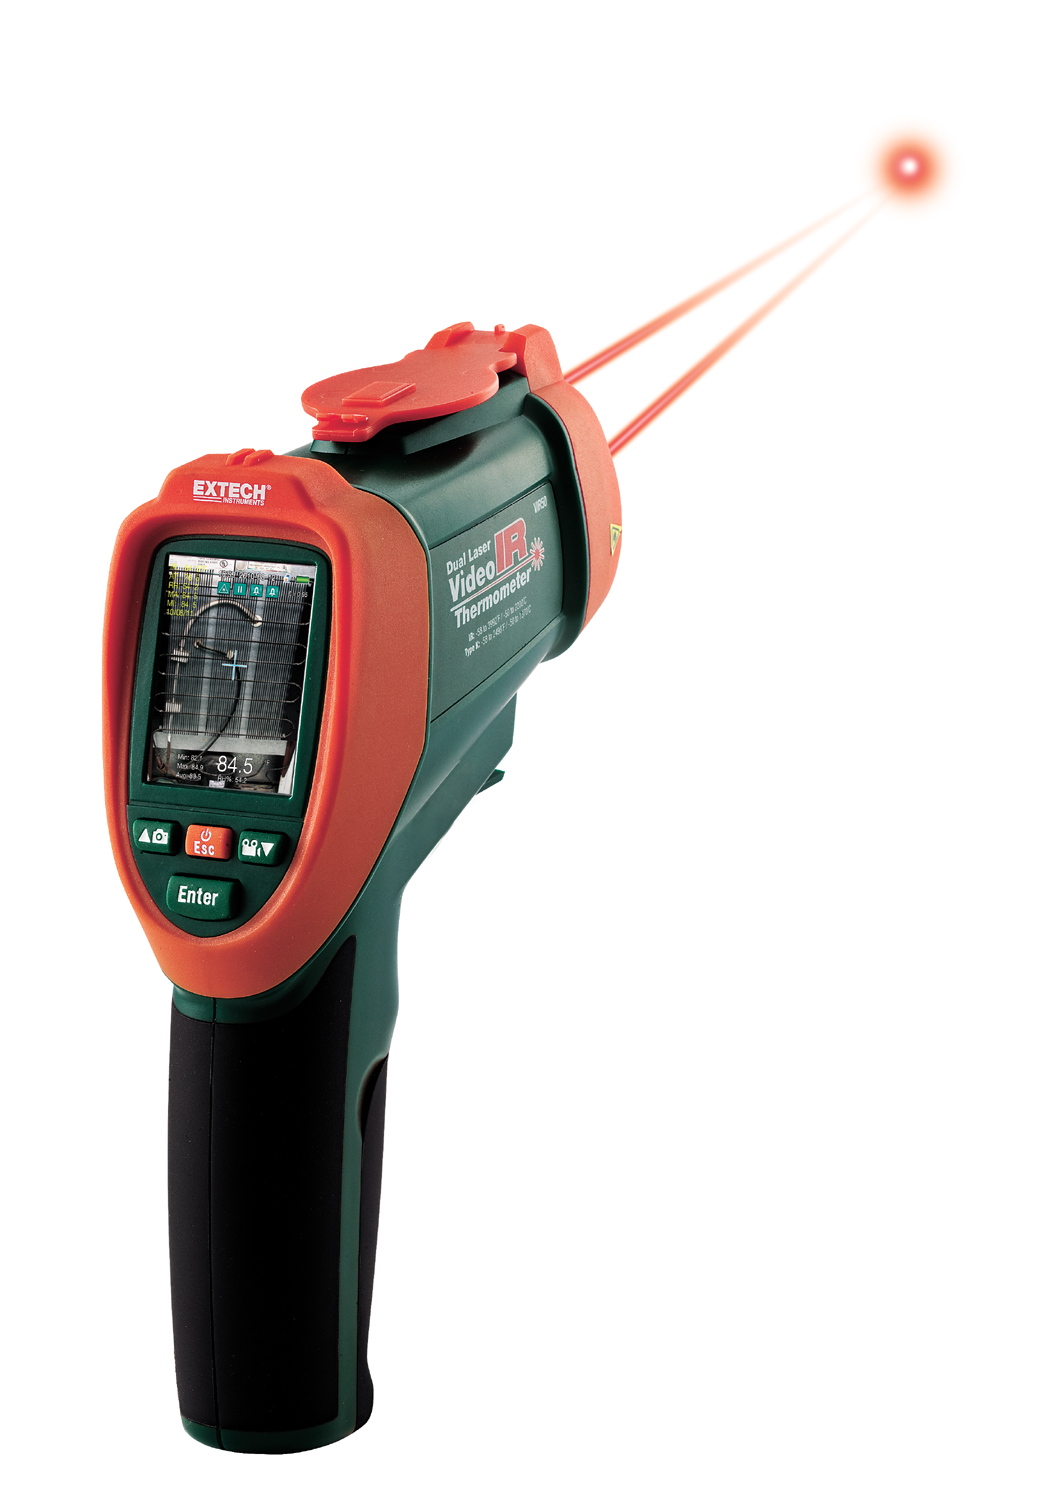 EXTECH VIR50 - Dual Laser IR Video Thermometer